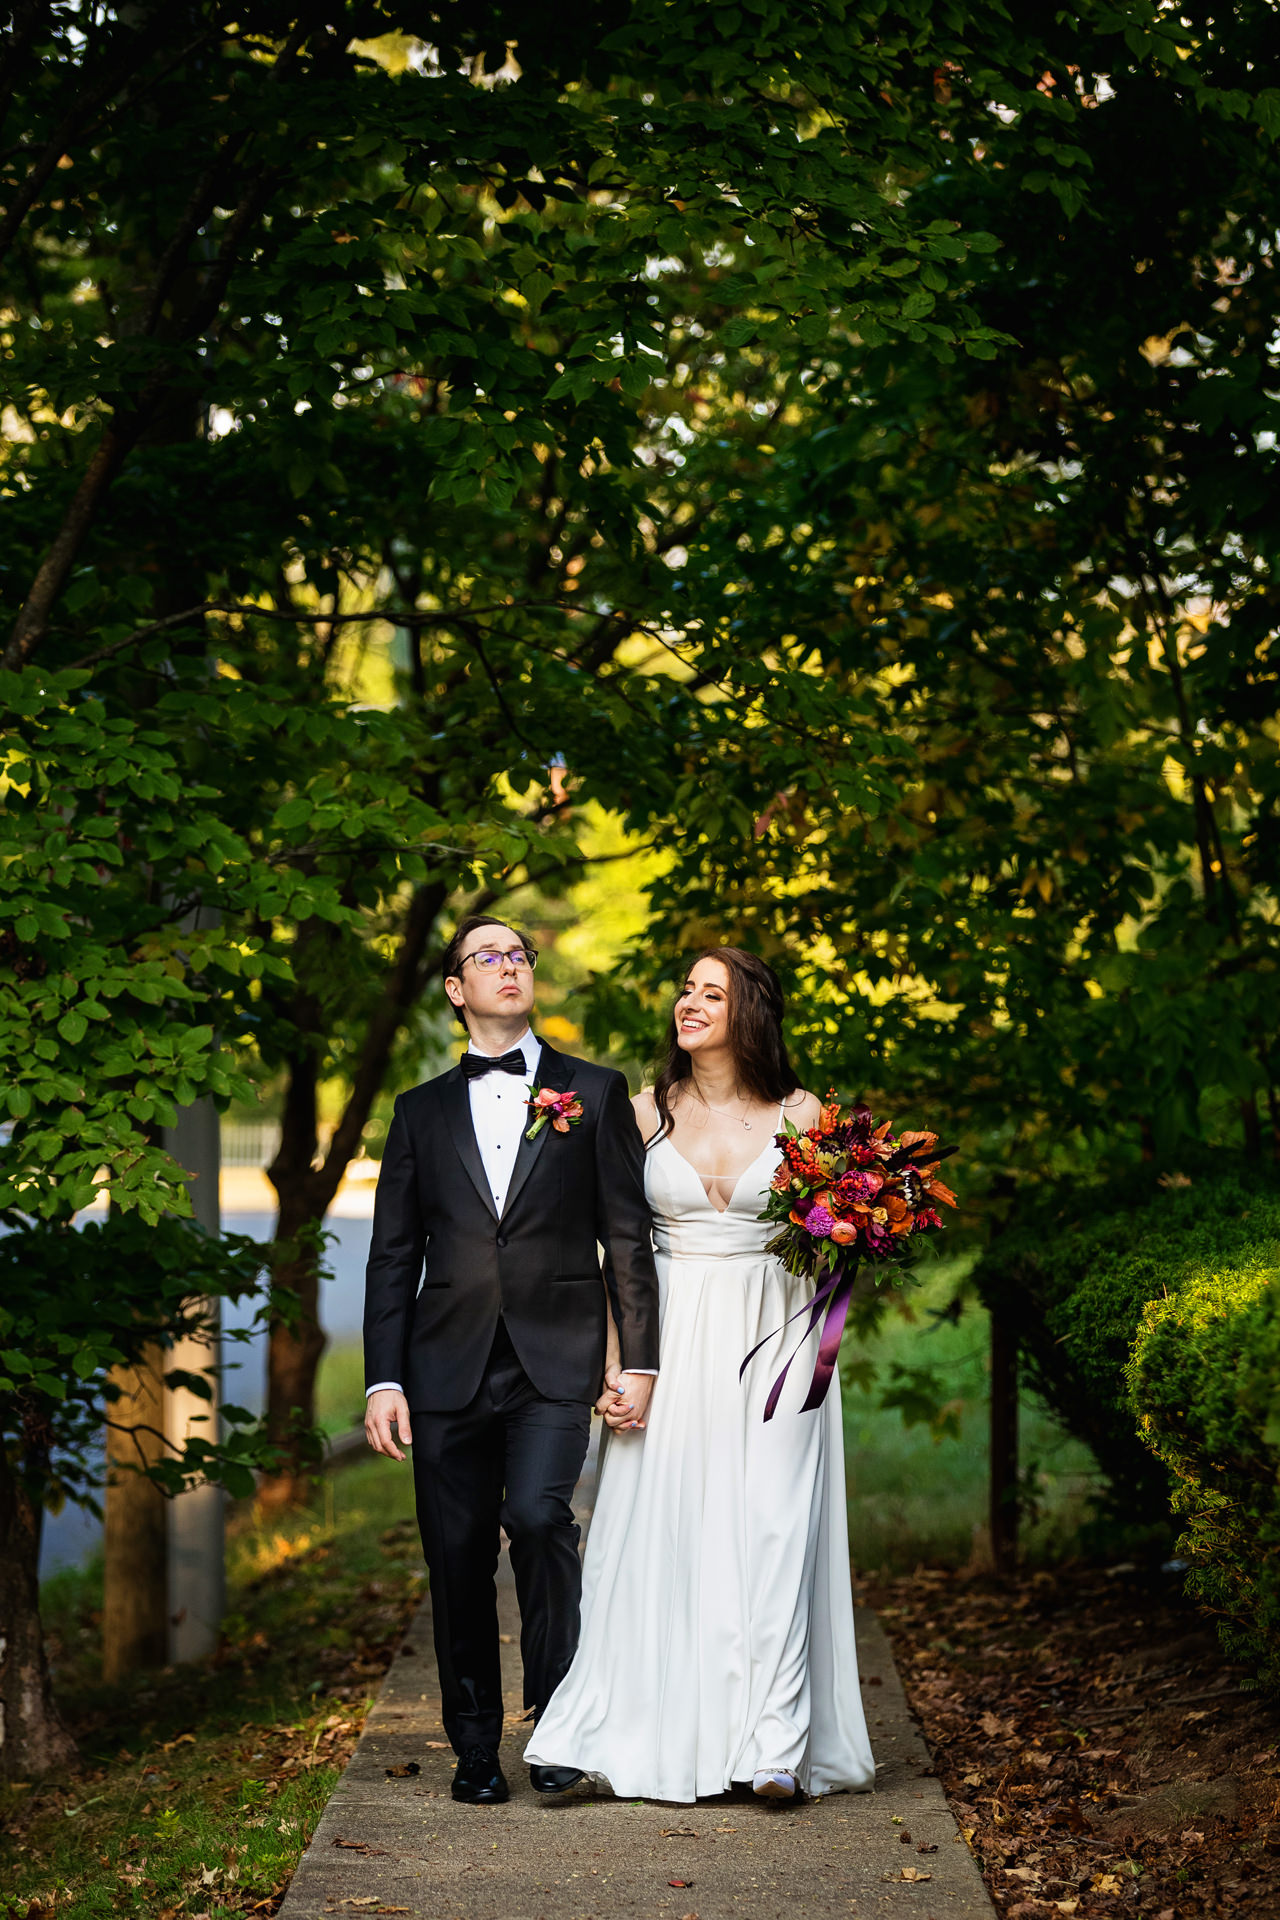 New Jersey Private Wedding Photos | The newlyweds walk down the sidewalk